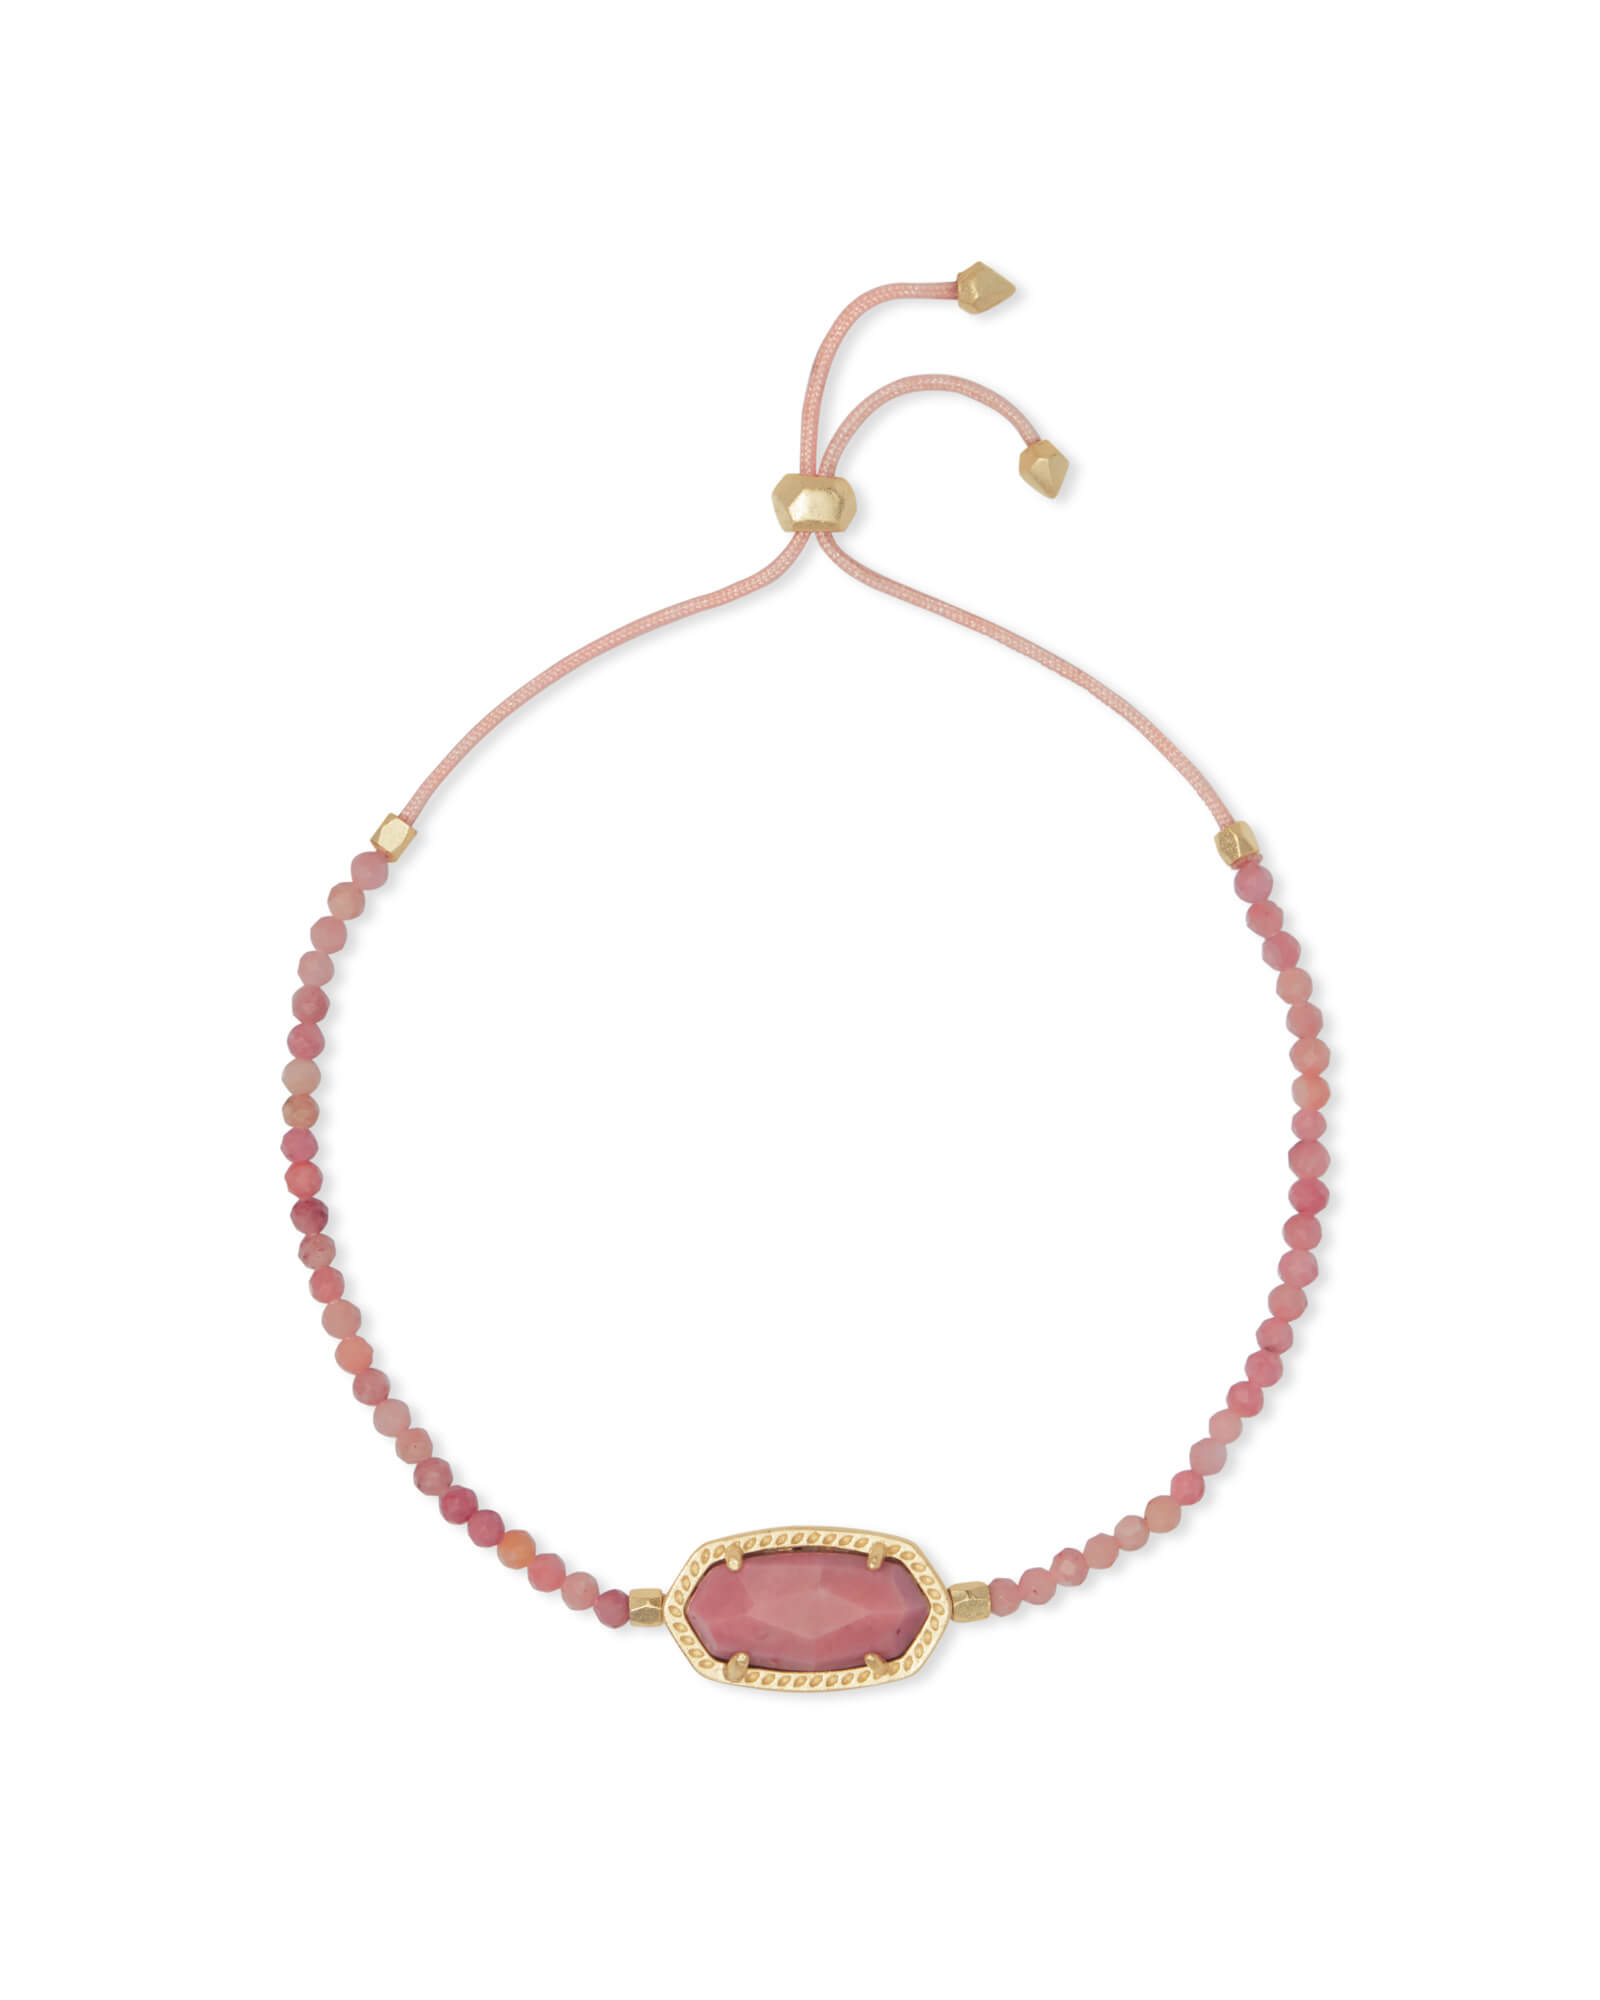 Elaina Gold Beaded Chain Bracelet in Pink Rhodonite